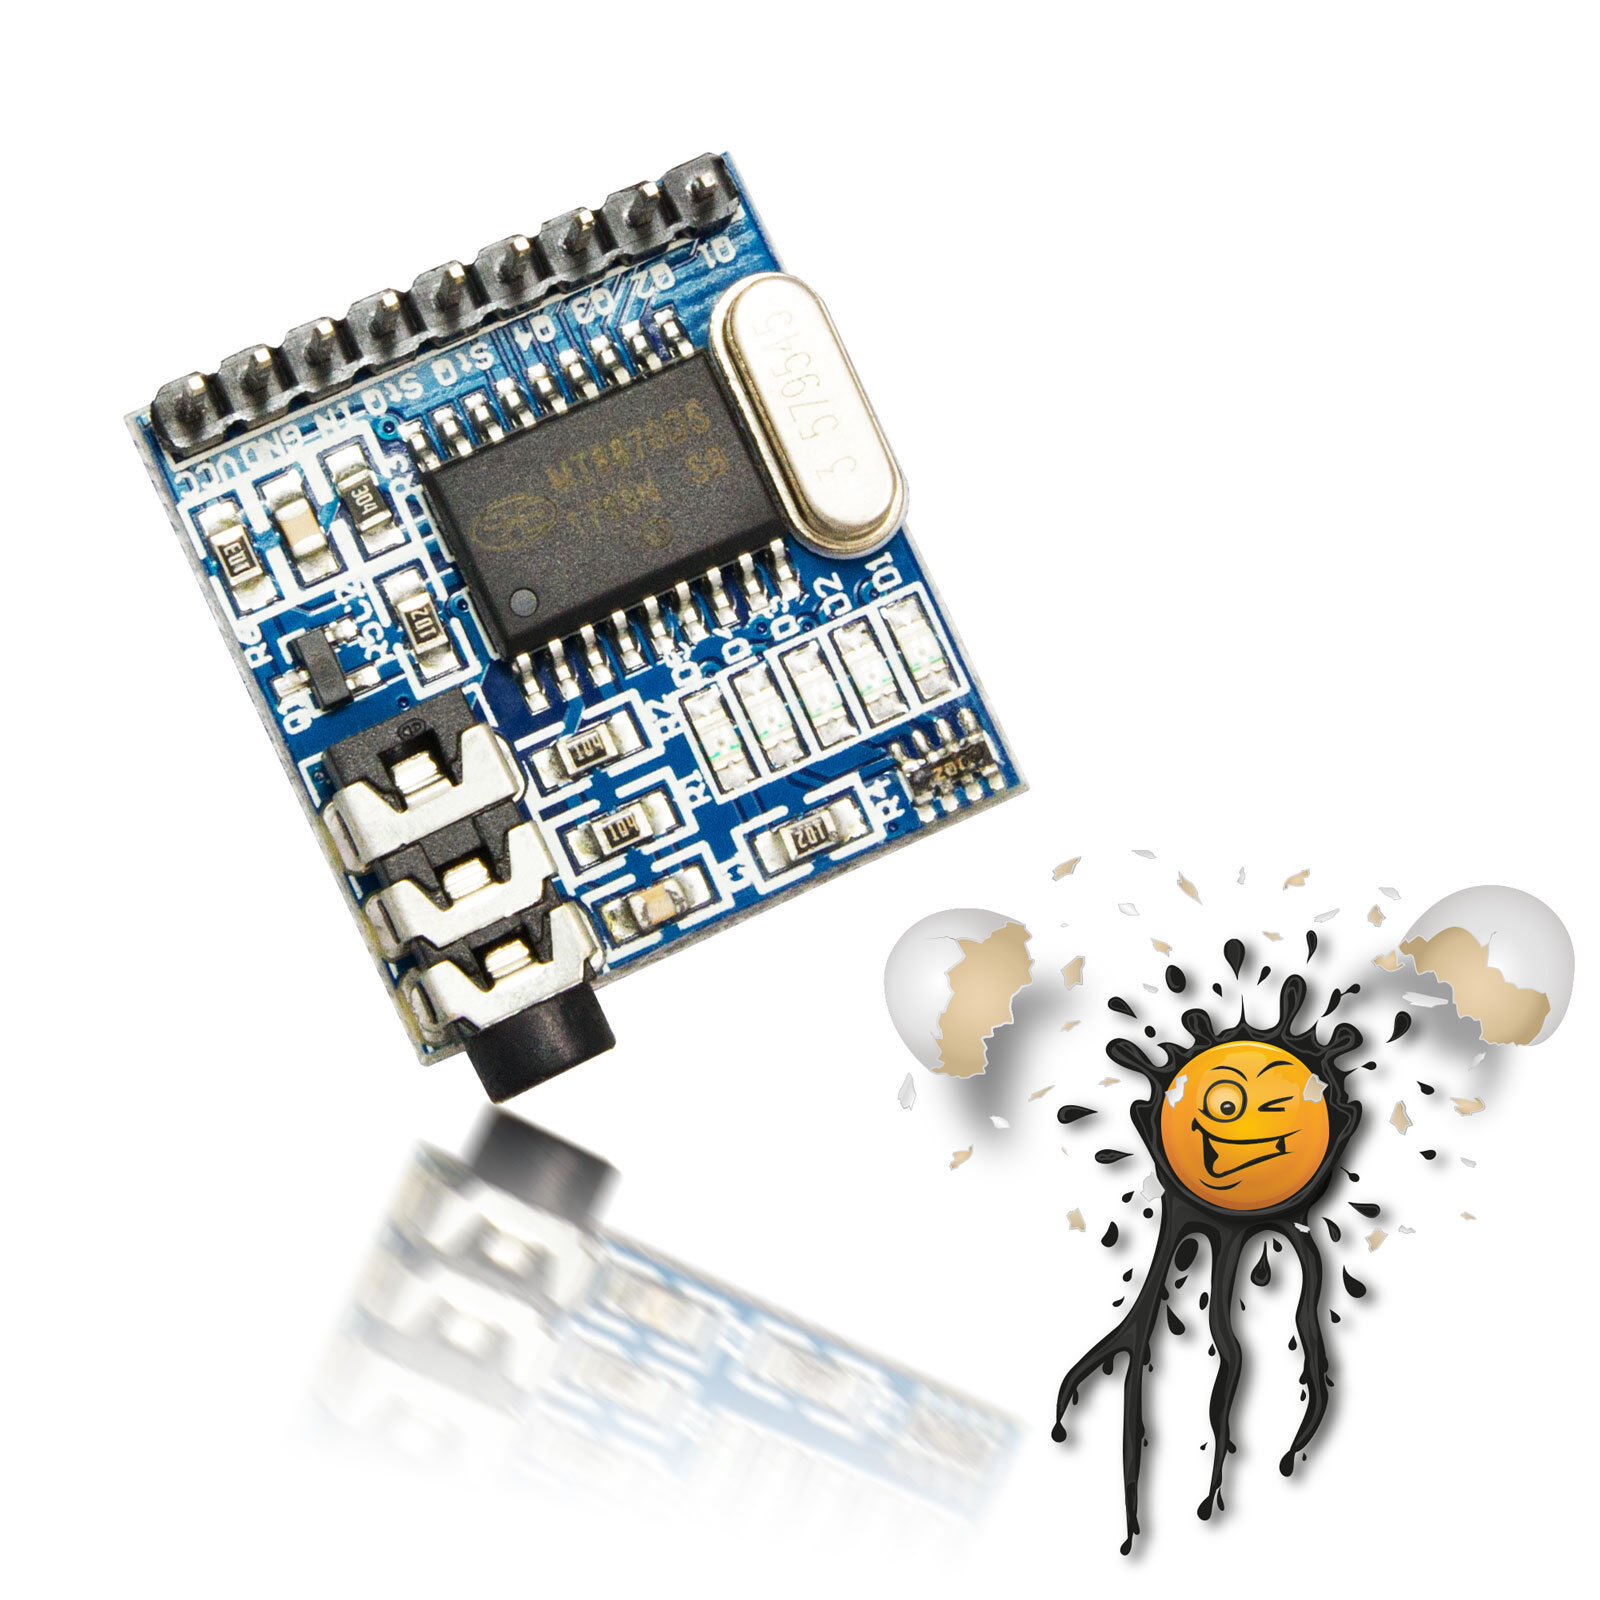 Mt8870 Dtmf Dual Tone Multi Frequency Audio Decoder Xd 61 33 5v Generator Module Androegg